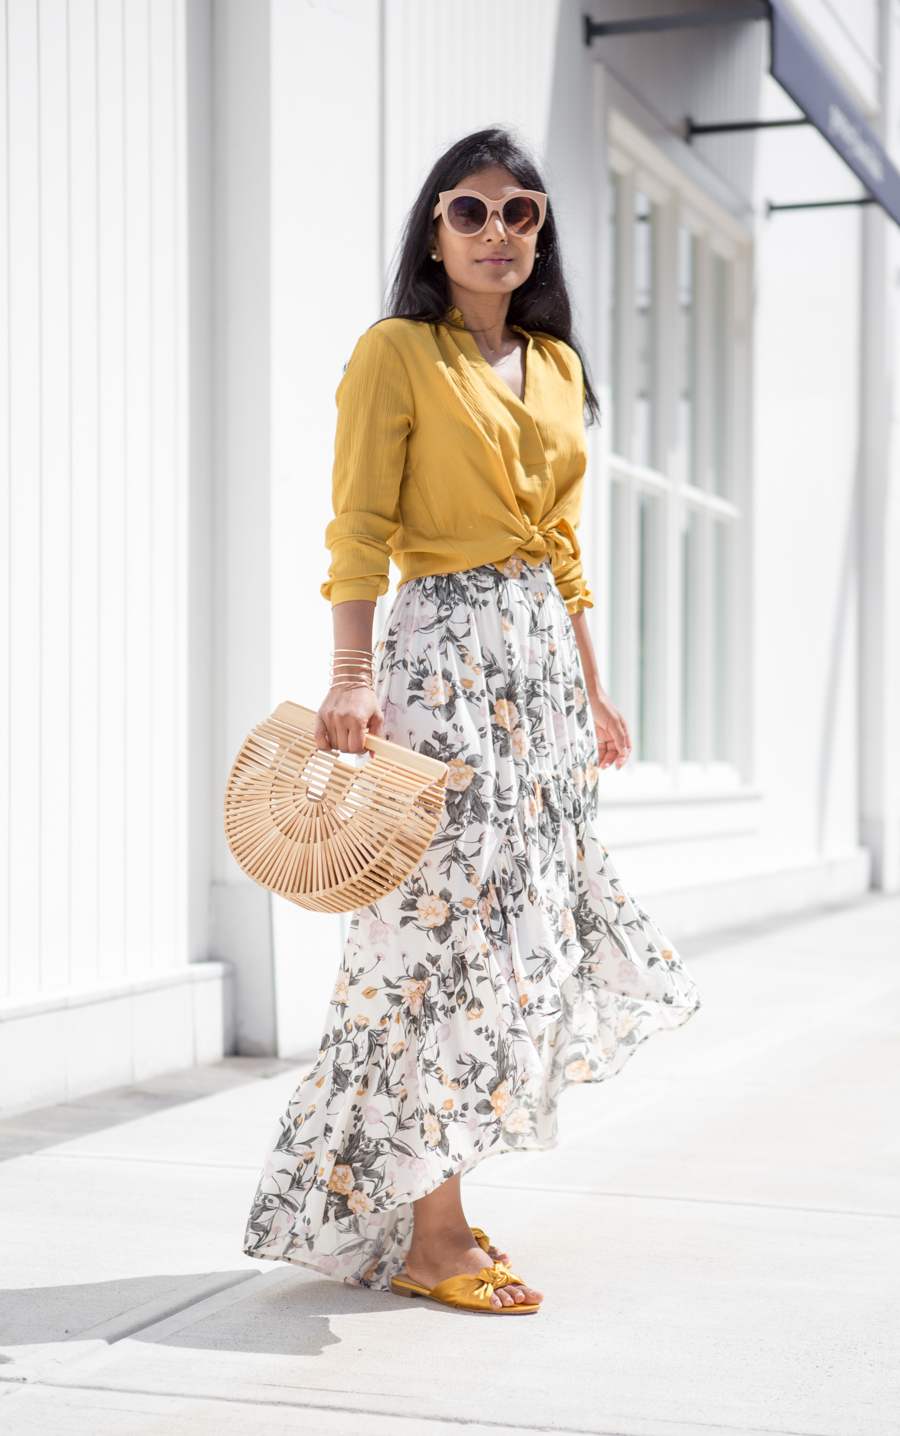 ruffles, tiered, maxi skirt, petite fashion, petite style, petite-friendly, petite maxi skirt, satin sliders, satin sandals, yellow, gold, affordable style, trendy, feminine style, colorful style, style tips, indian blogger